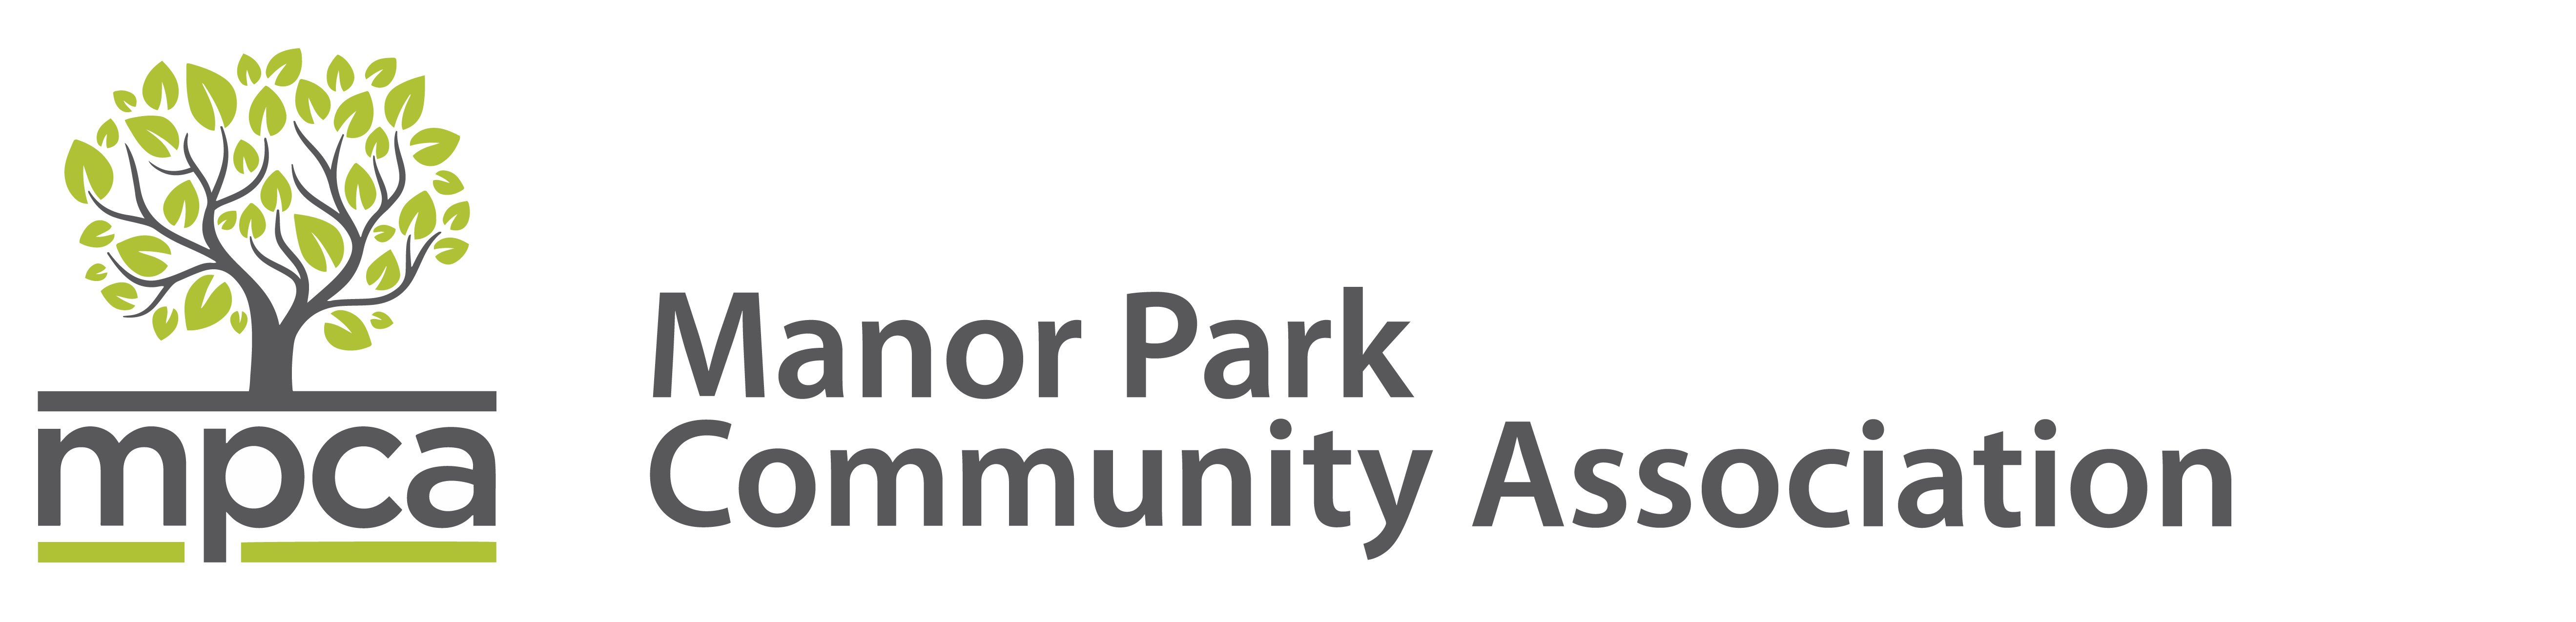 Home of the Manor Park Community Association